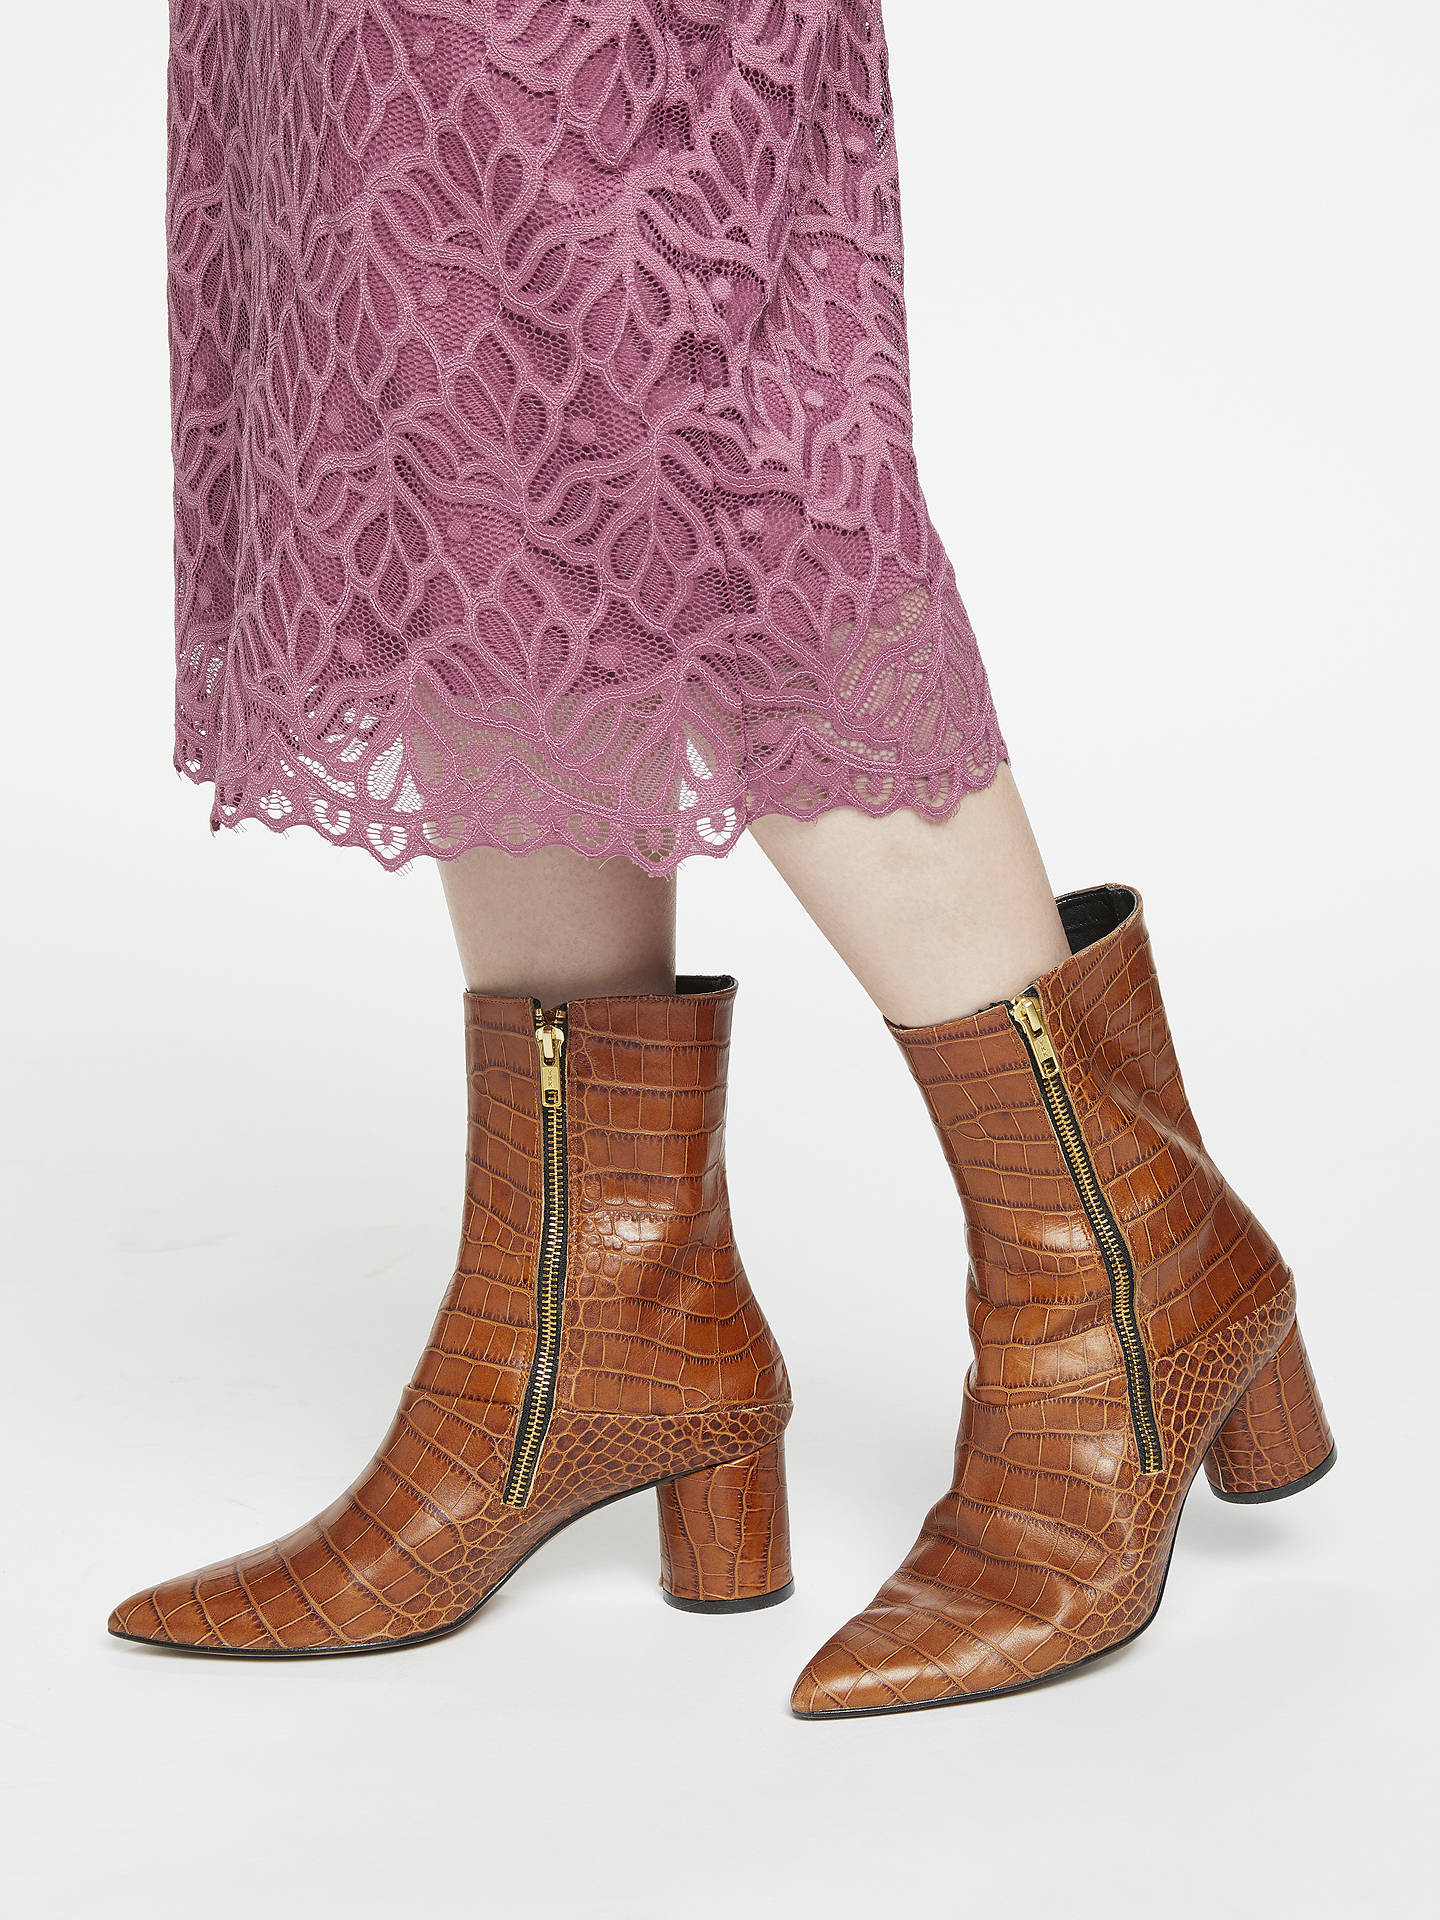 06a74e6d1bfc ... Buy Finery Emilia Block Heel Ankle Boots